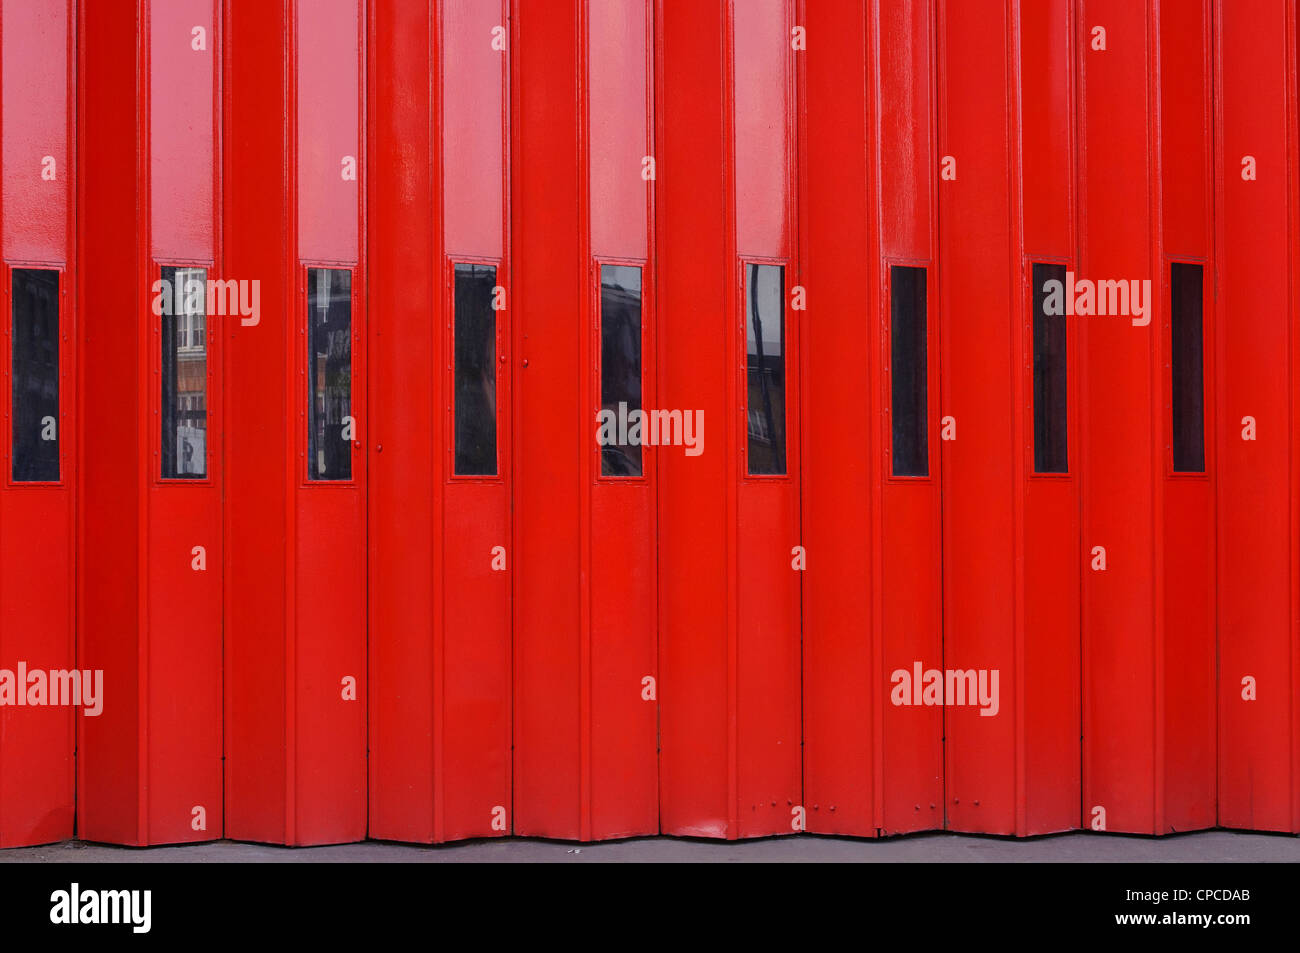 Bright red doors of a fire station in Old Street, London - Stock Image